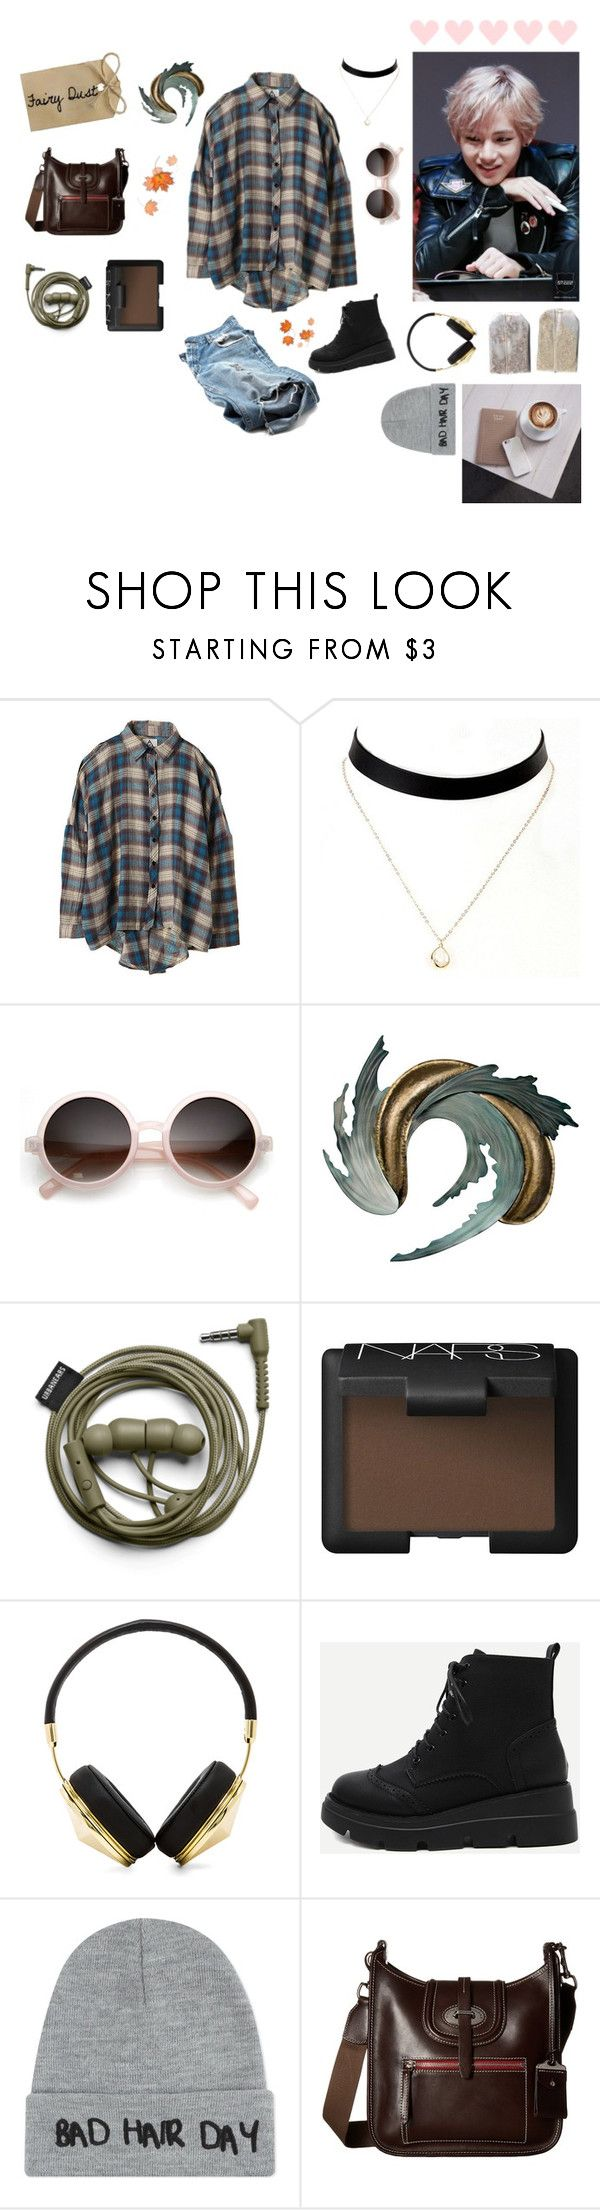 """• Kim taehyung •"" by rxvenclxw ❤ liked on Polyvore featuring UNIF, Retrò, Universal Lighting and Decor, NARS Cosmetics, Frends, WithChic, Local Heroes, Dooney & Bourke, autumn and KimTaehyung"